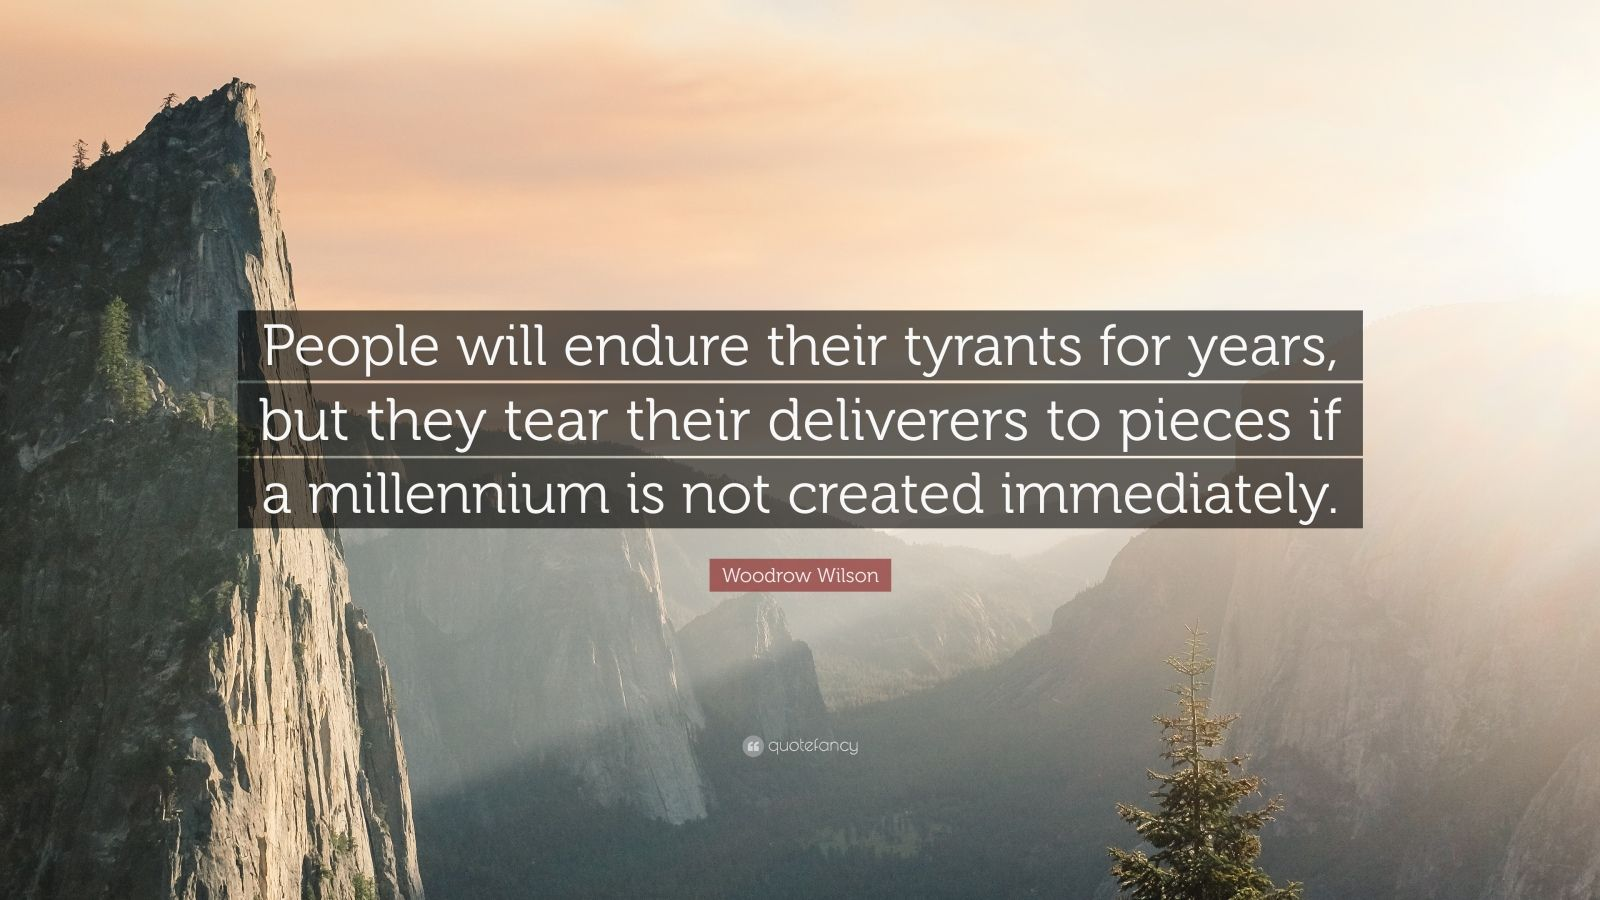 """Woodrow Wilson Quote: """"People will endure their tyrants for years, but they tear their deliverers to pieces if a millennium is not created immediately."""""""